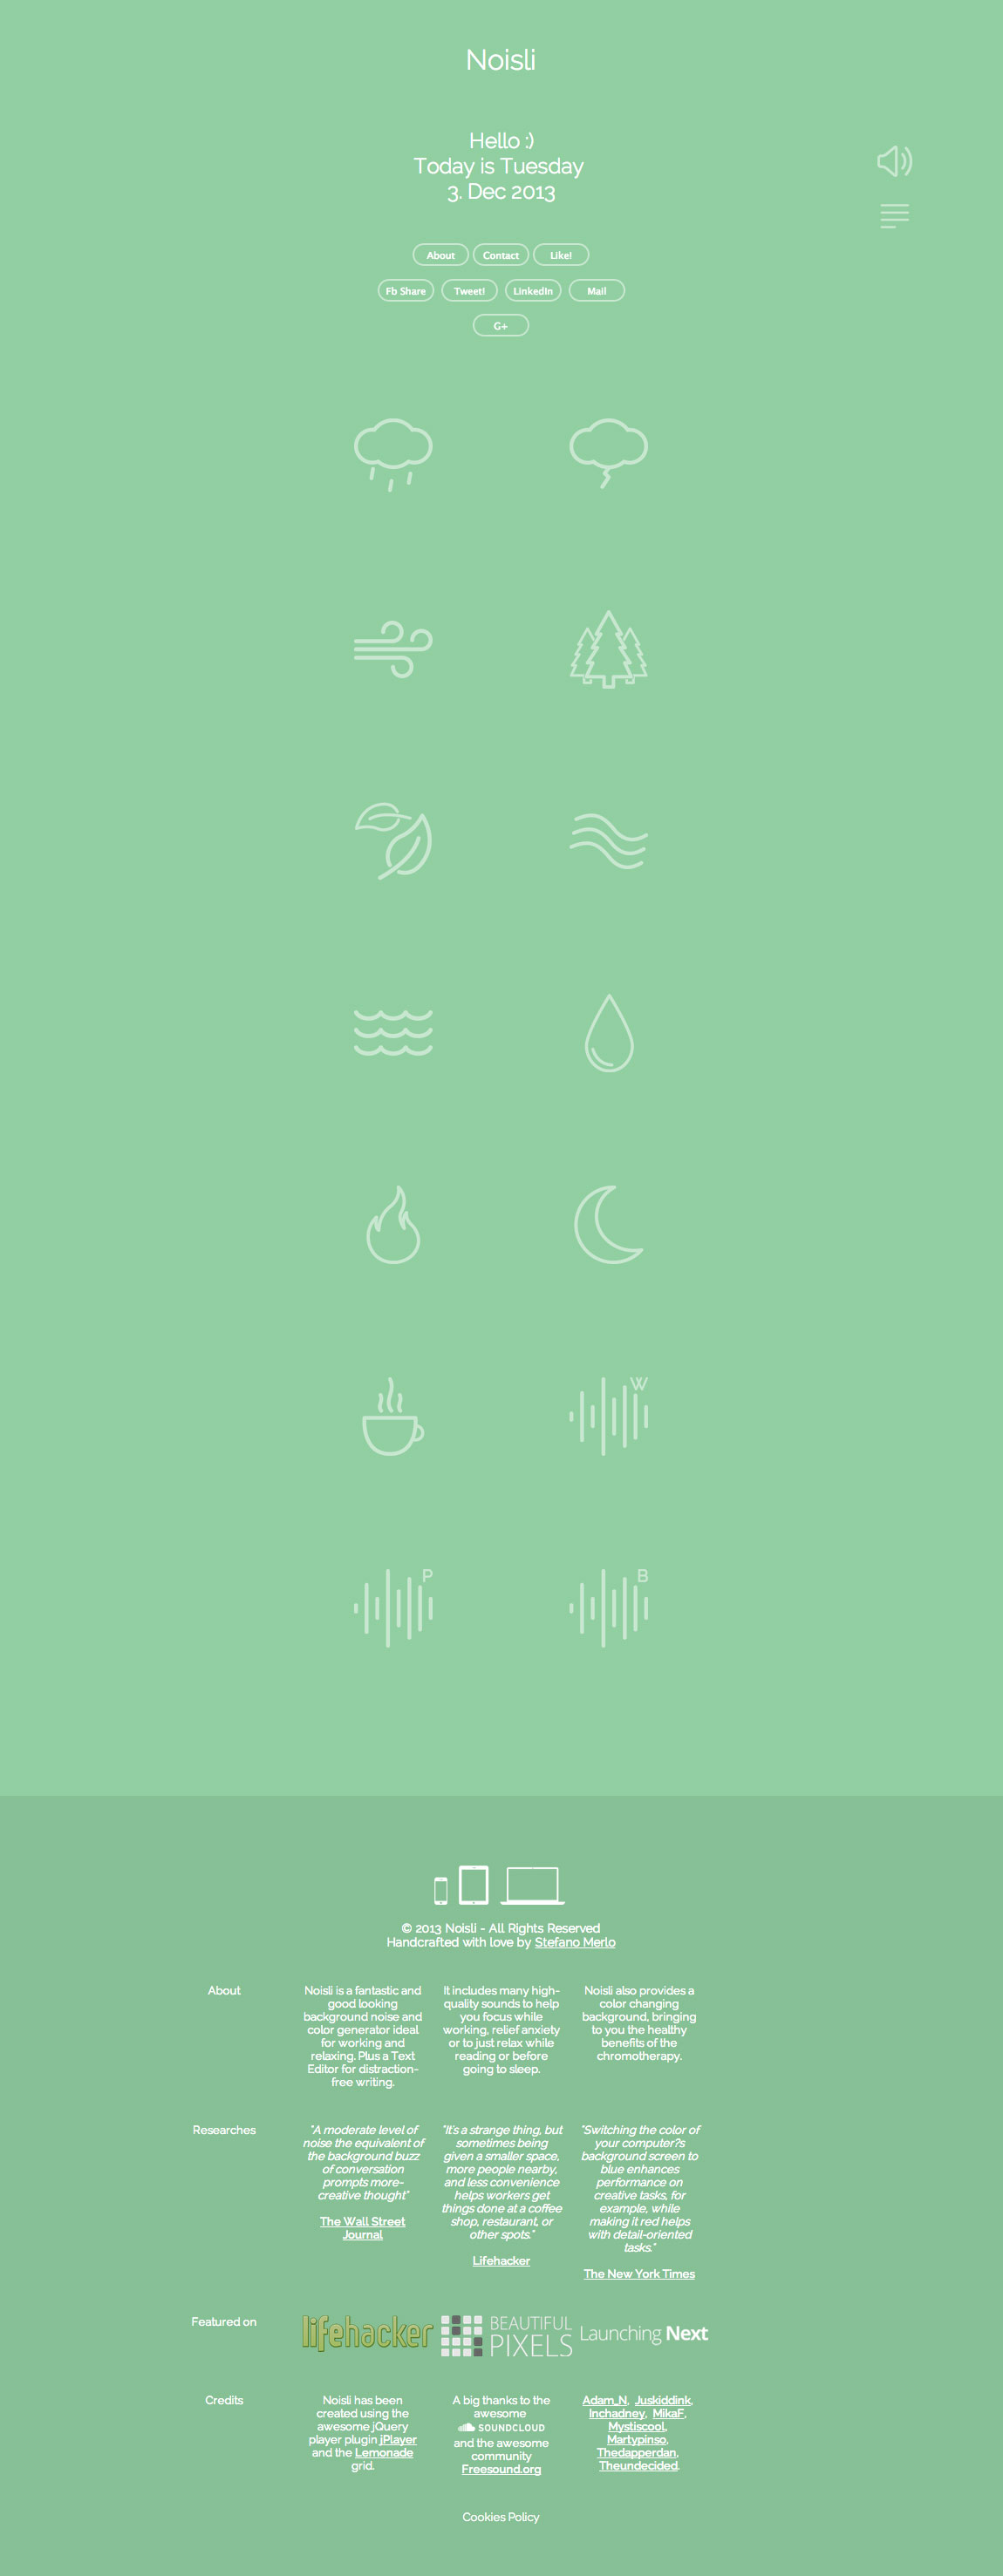 Noisli Website Screenshot